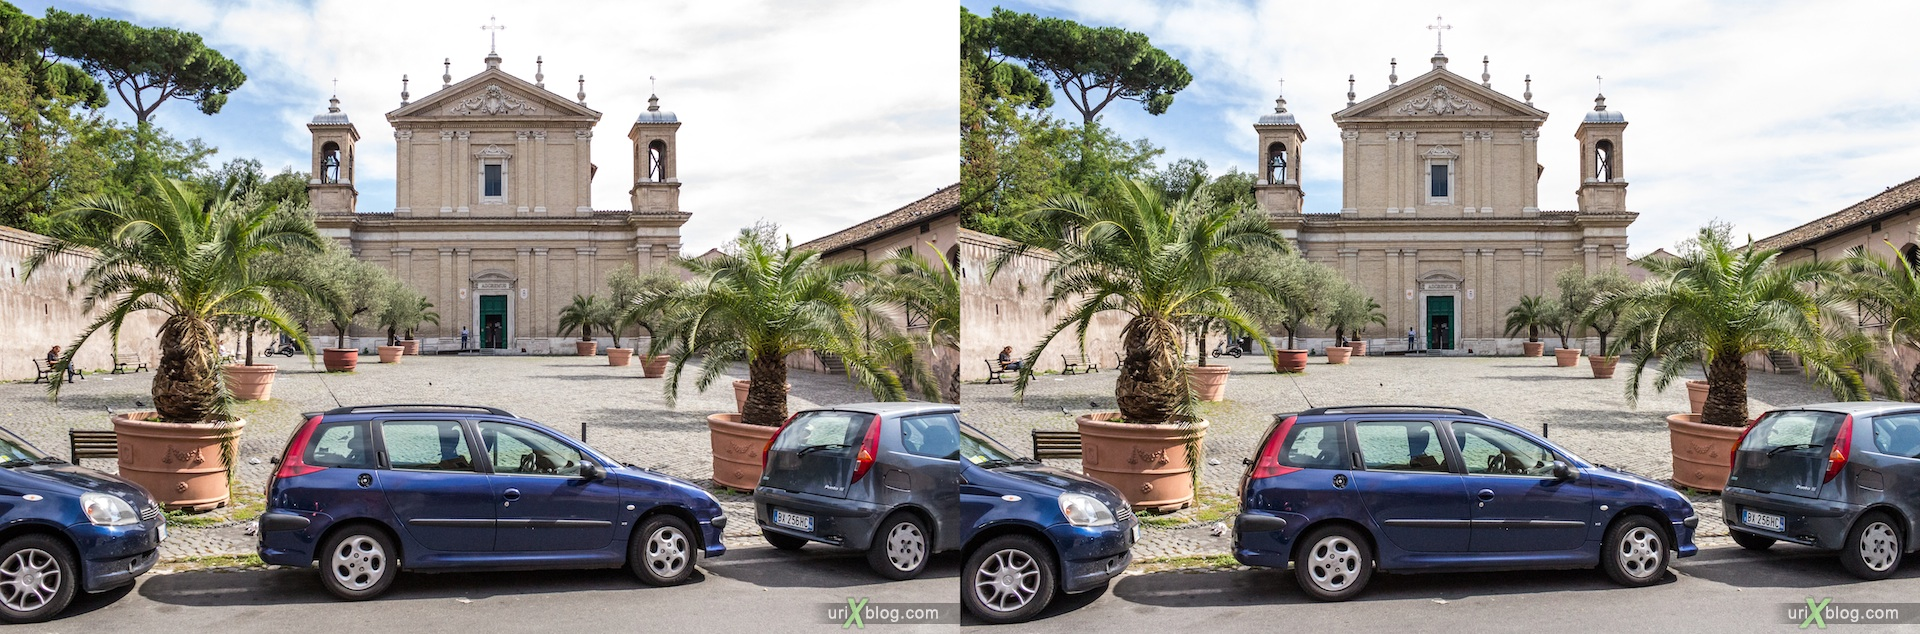 2012, church of Santa Anastasia, Palatine hill, Rome, Italy, cathedral, monastery, Christianity, Catholicism, 3D, stereo pair, cross-eyed, crossview, cross view stereo pair